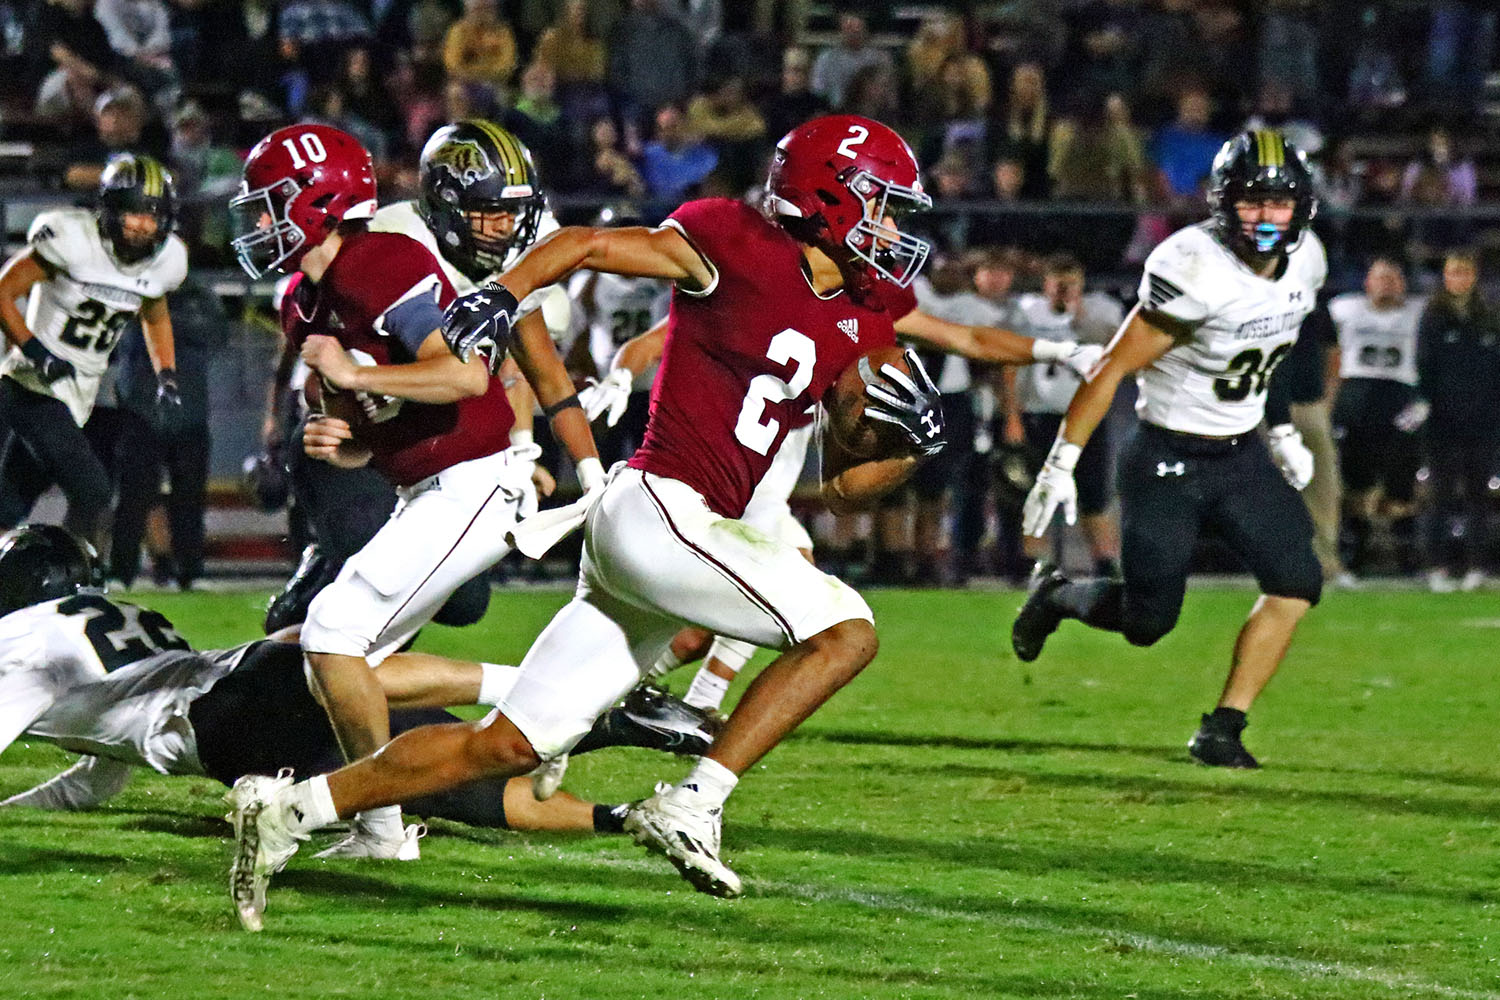 Hartselle uses third-quarter outburst to defeat Russellville 58-21